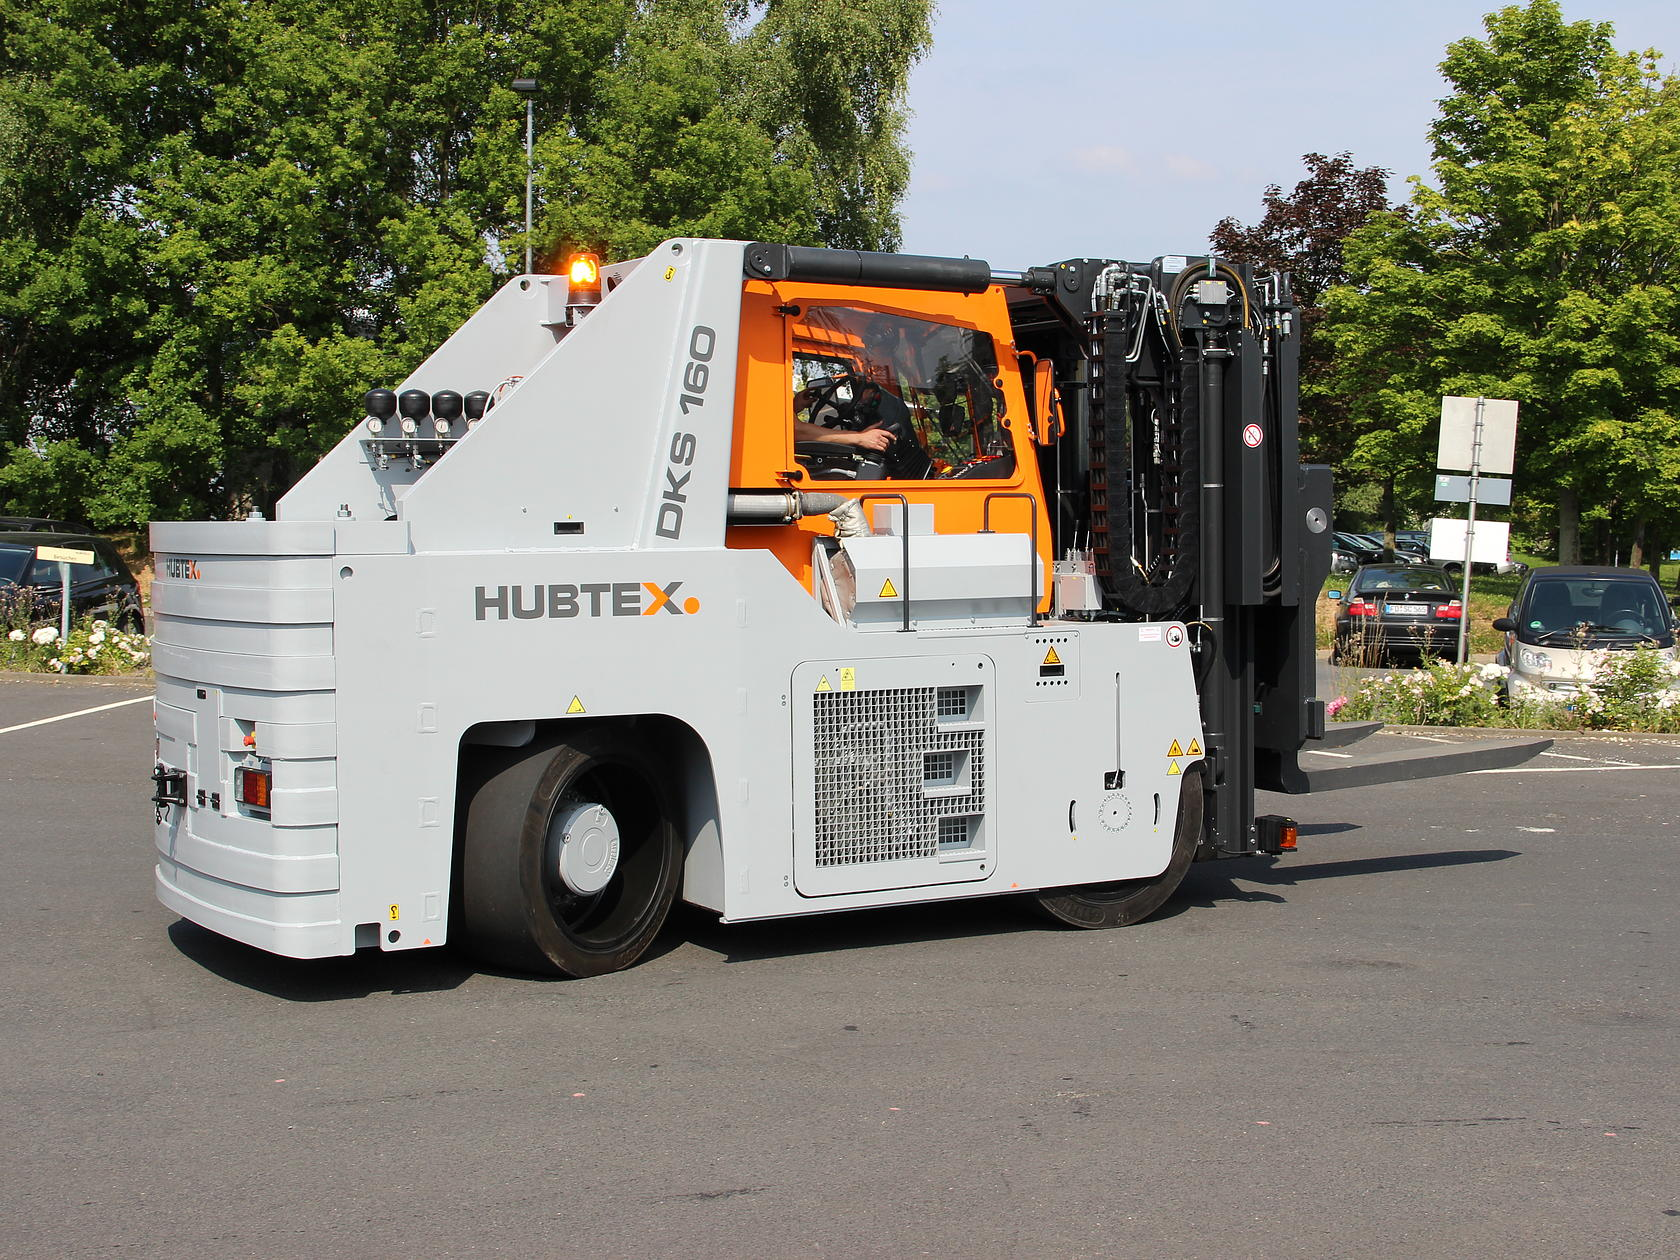 HUBTEX heavy-duty compact frontlifts